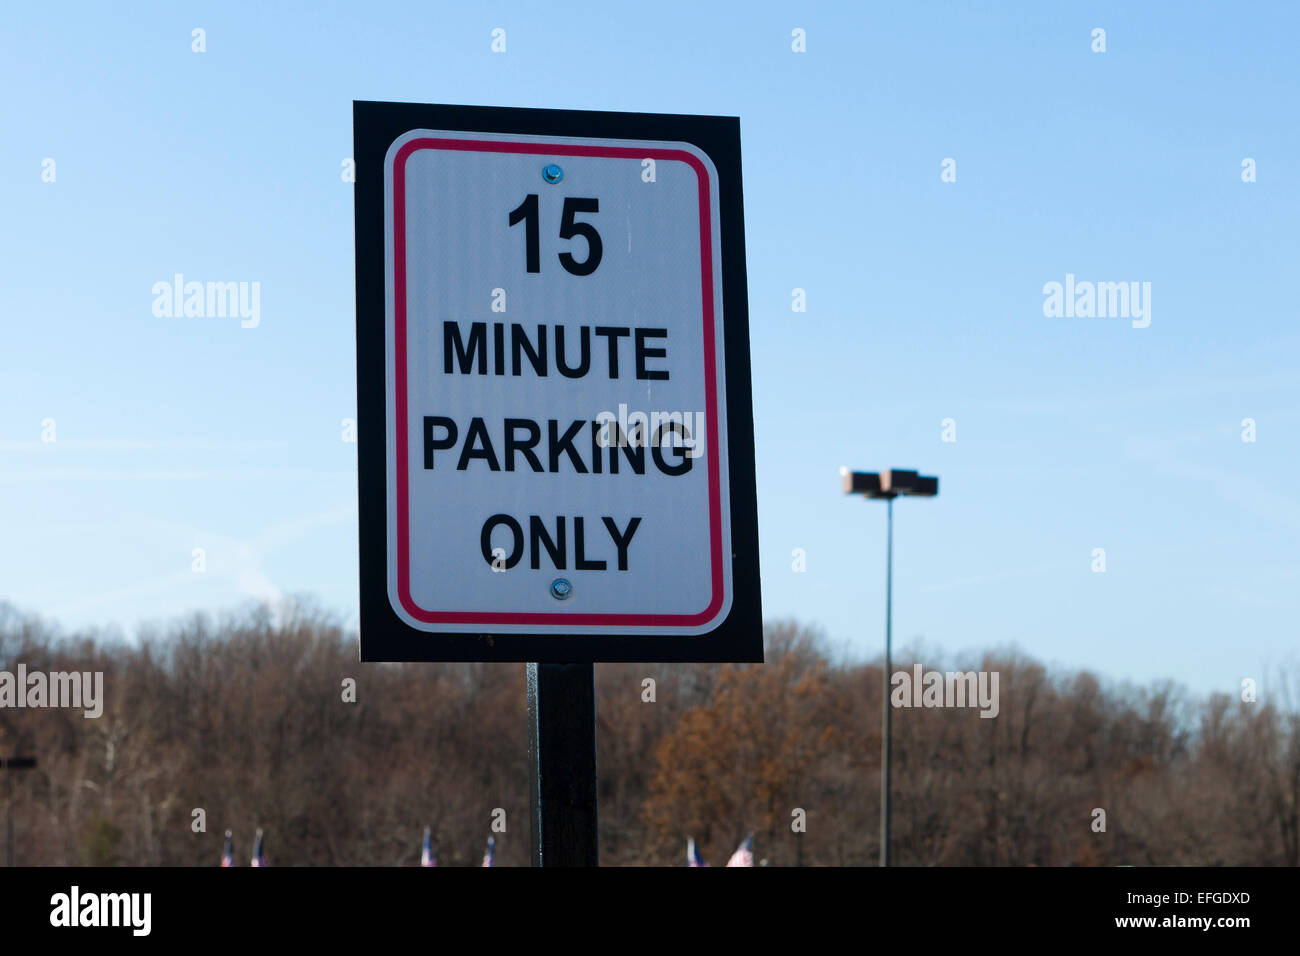 15 minute parking sign at strip mall - USA - Stock Image